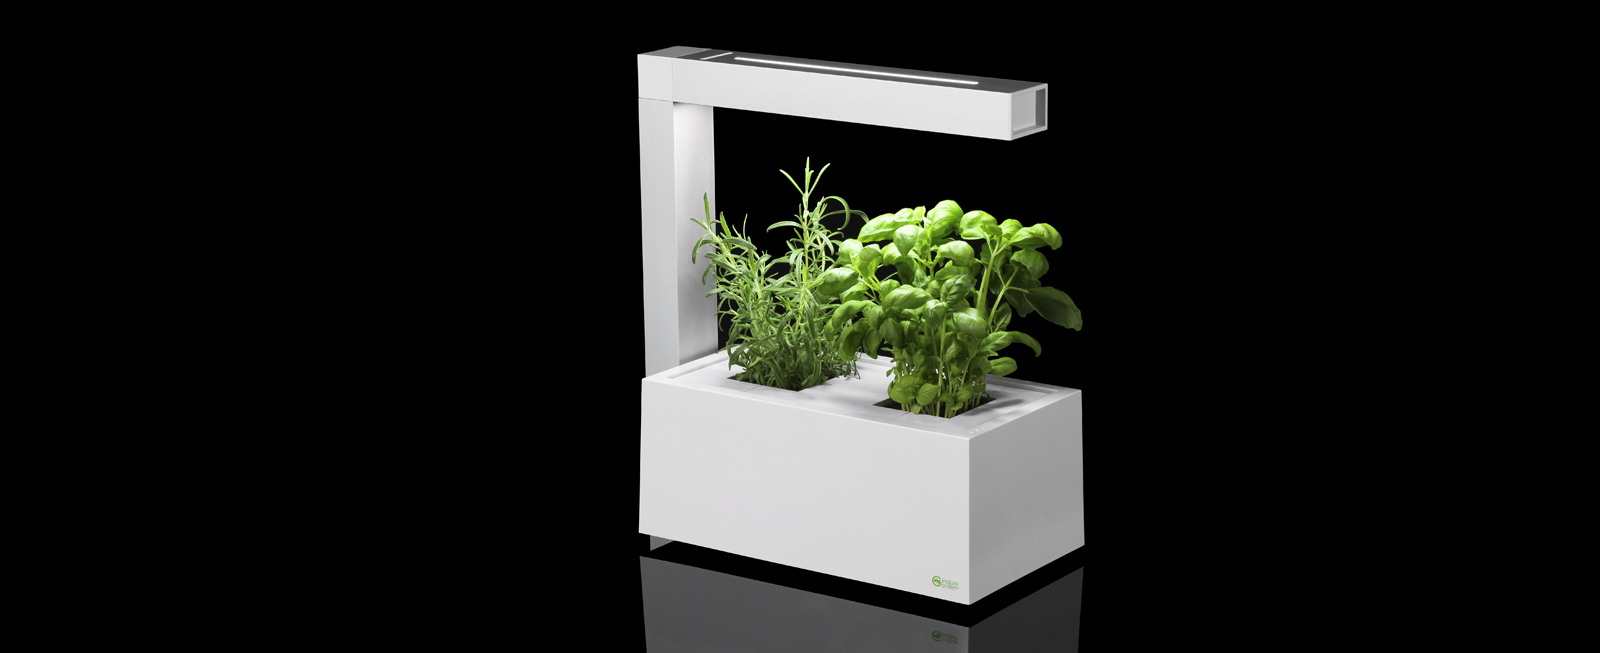 Indoorgarden - fotograf Tedd Soost - www.soost.com - Top notch design & engineering